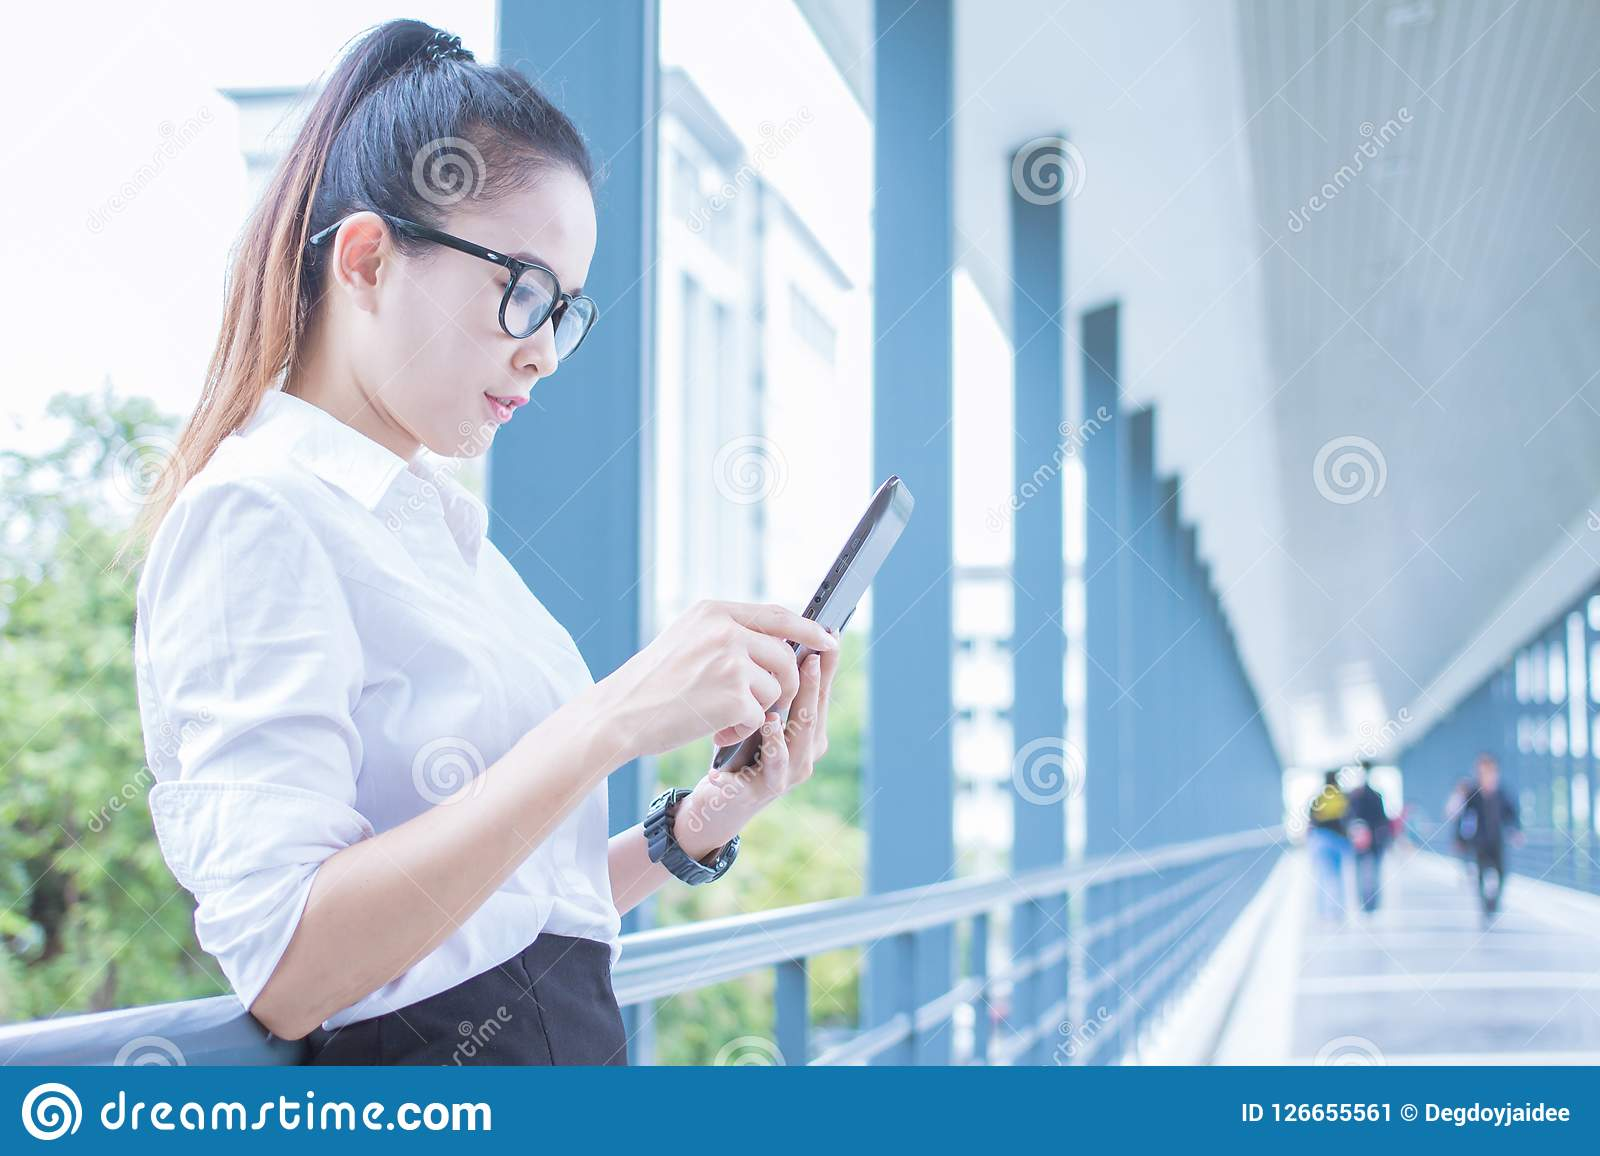 Business woman using tablet of working. Meetings the commercial activities in promoting. Together create a mutually beneficial.